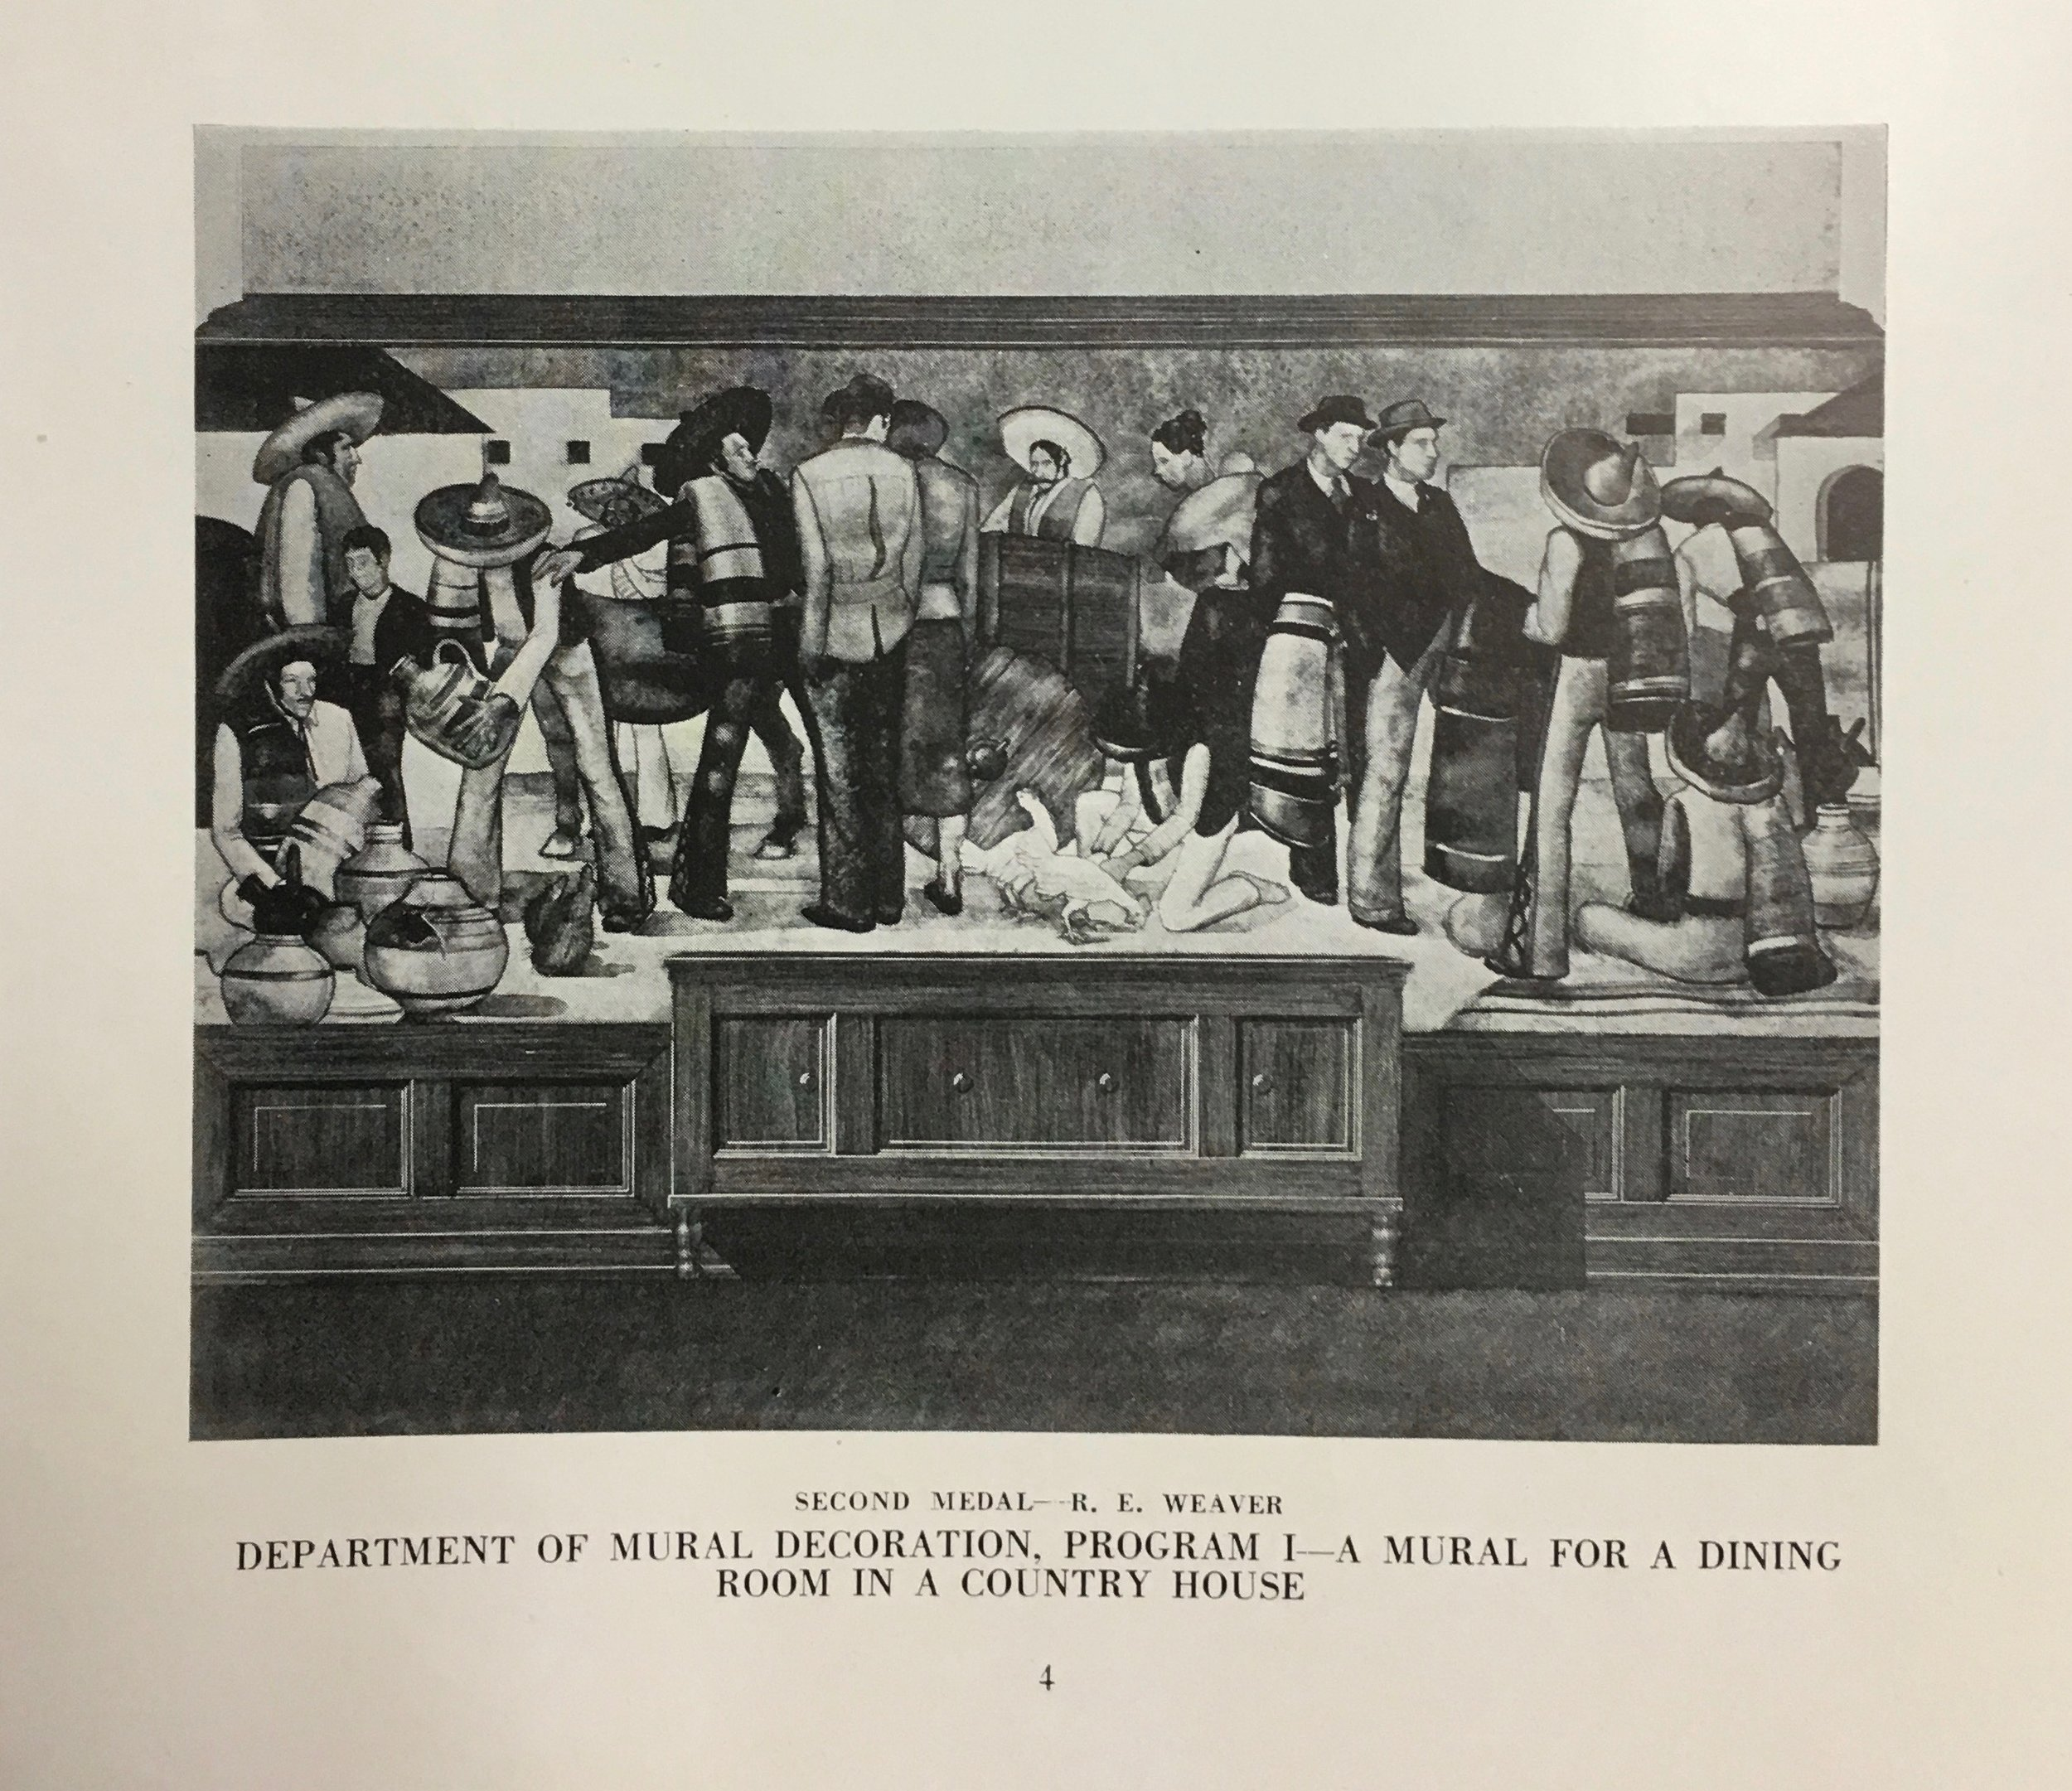 REW's mural design entry to the Society of Beaux Arts Architects. (from the Society catalogue of 1936)